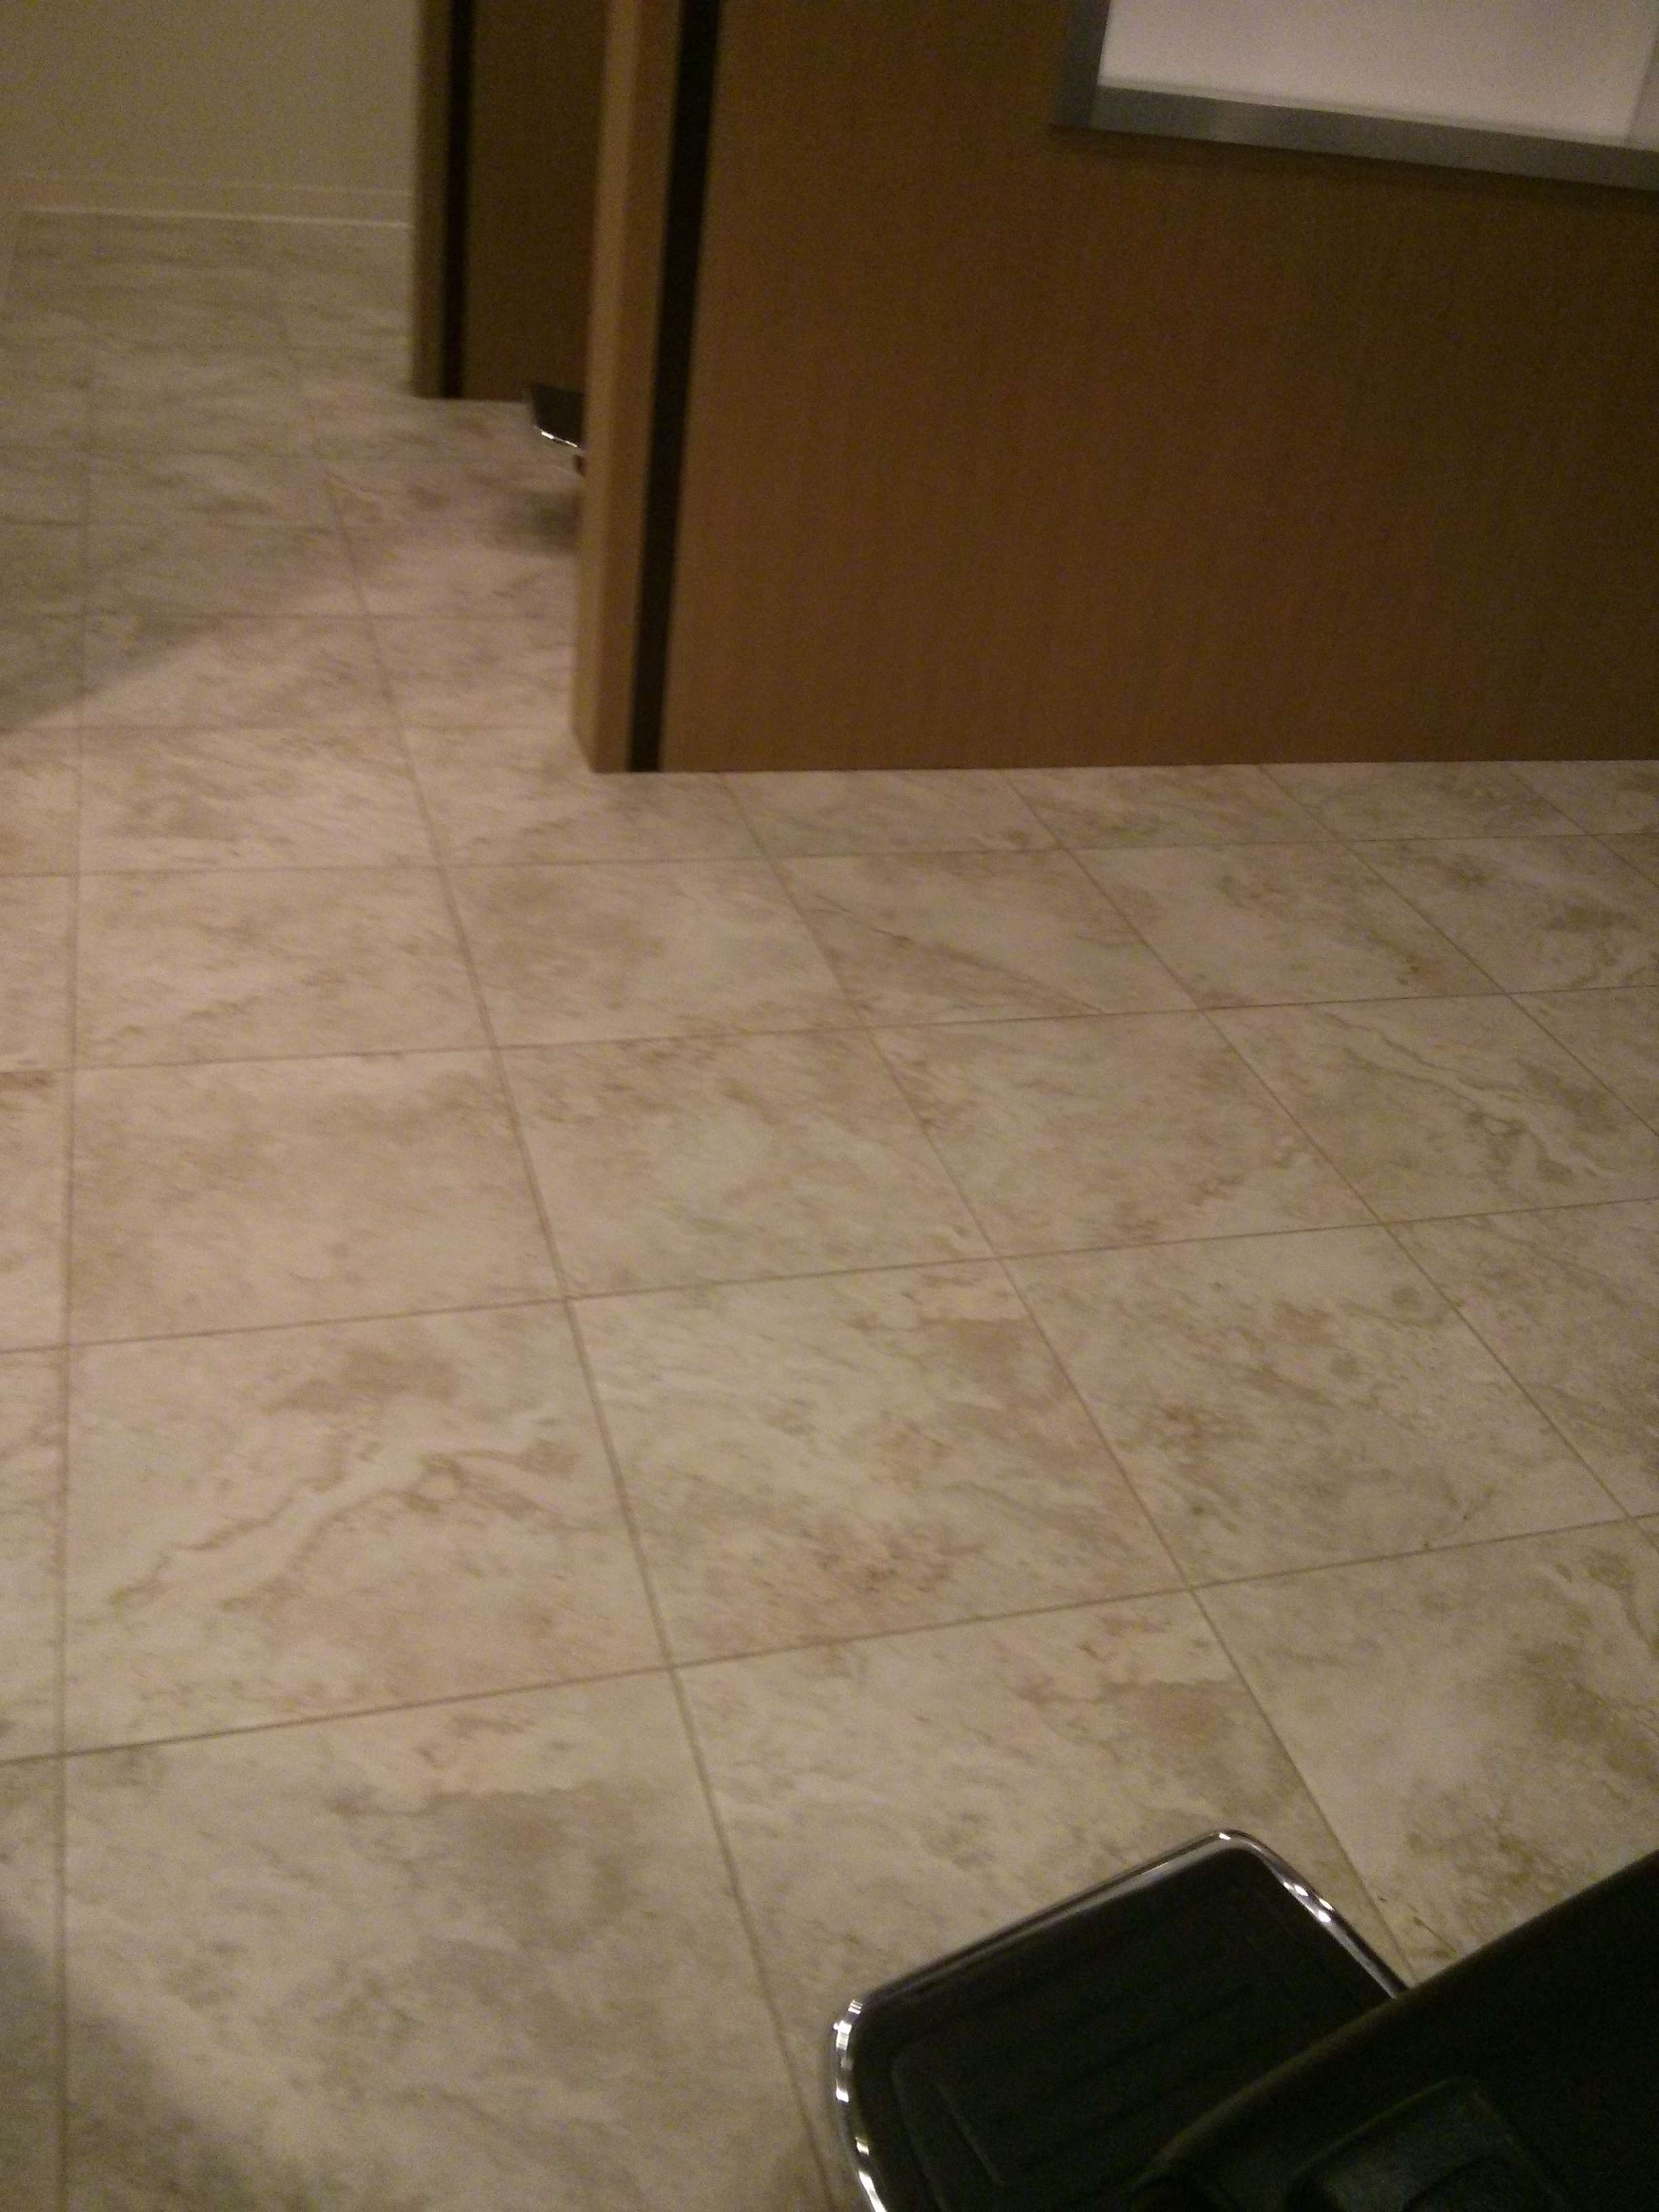 Ceramic floor tile and grout cleaning services mn dailygadgetfo Images